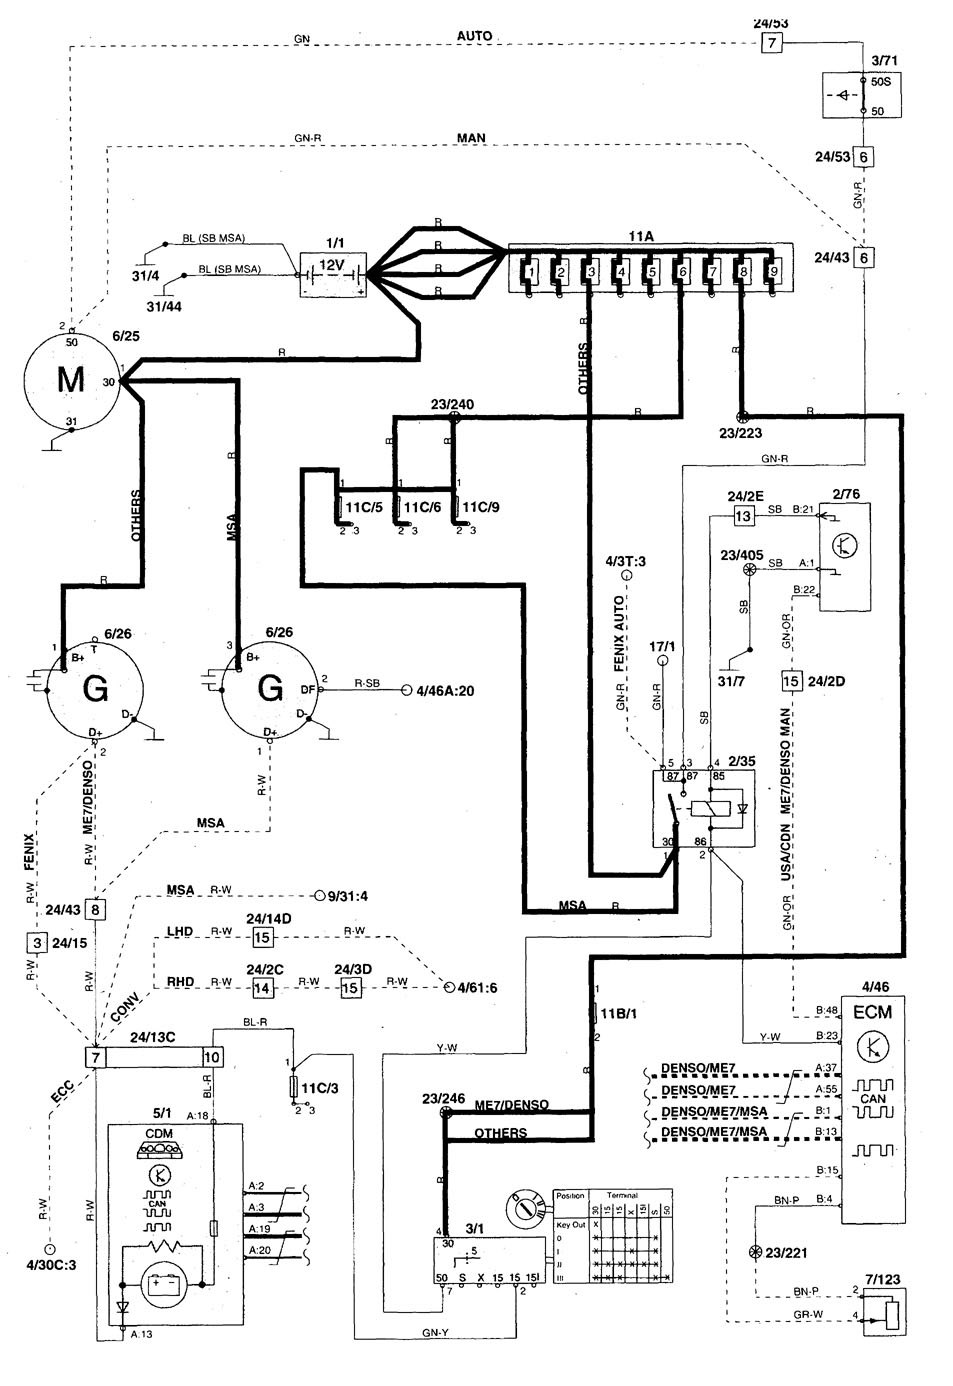 volvo c70 wiring diagram charging system 1 1999 volvo c70 (1999 2004) wiring diagrams charging system volvo c70 2001 wiring diagram at bayanpartner.co